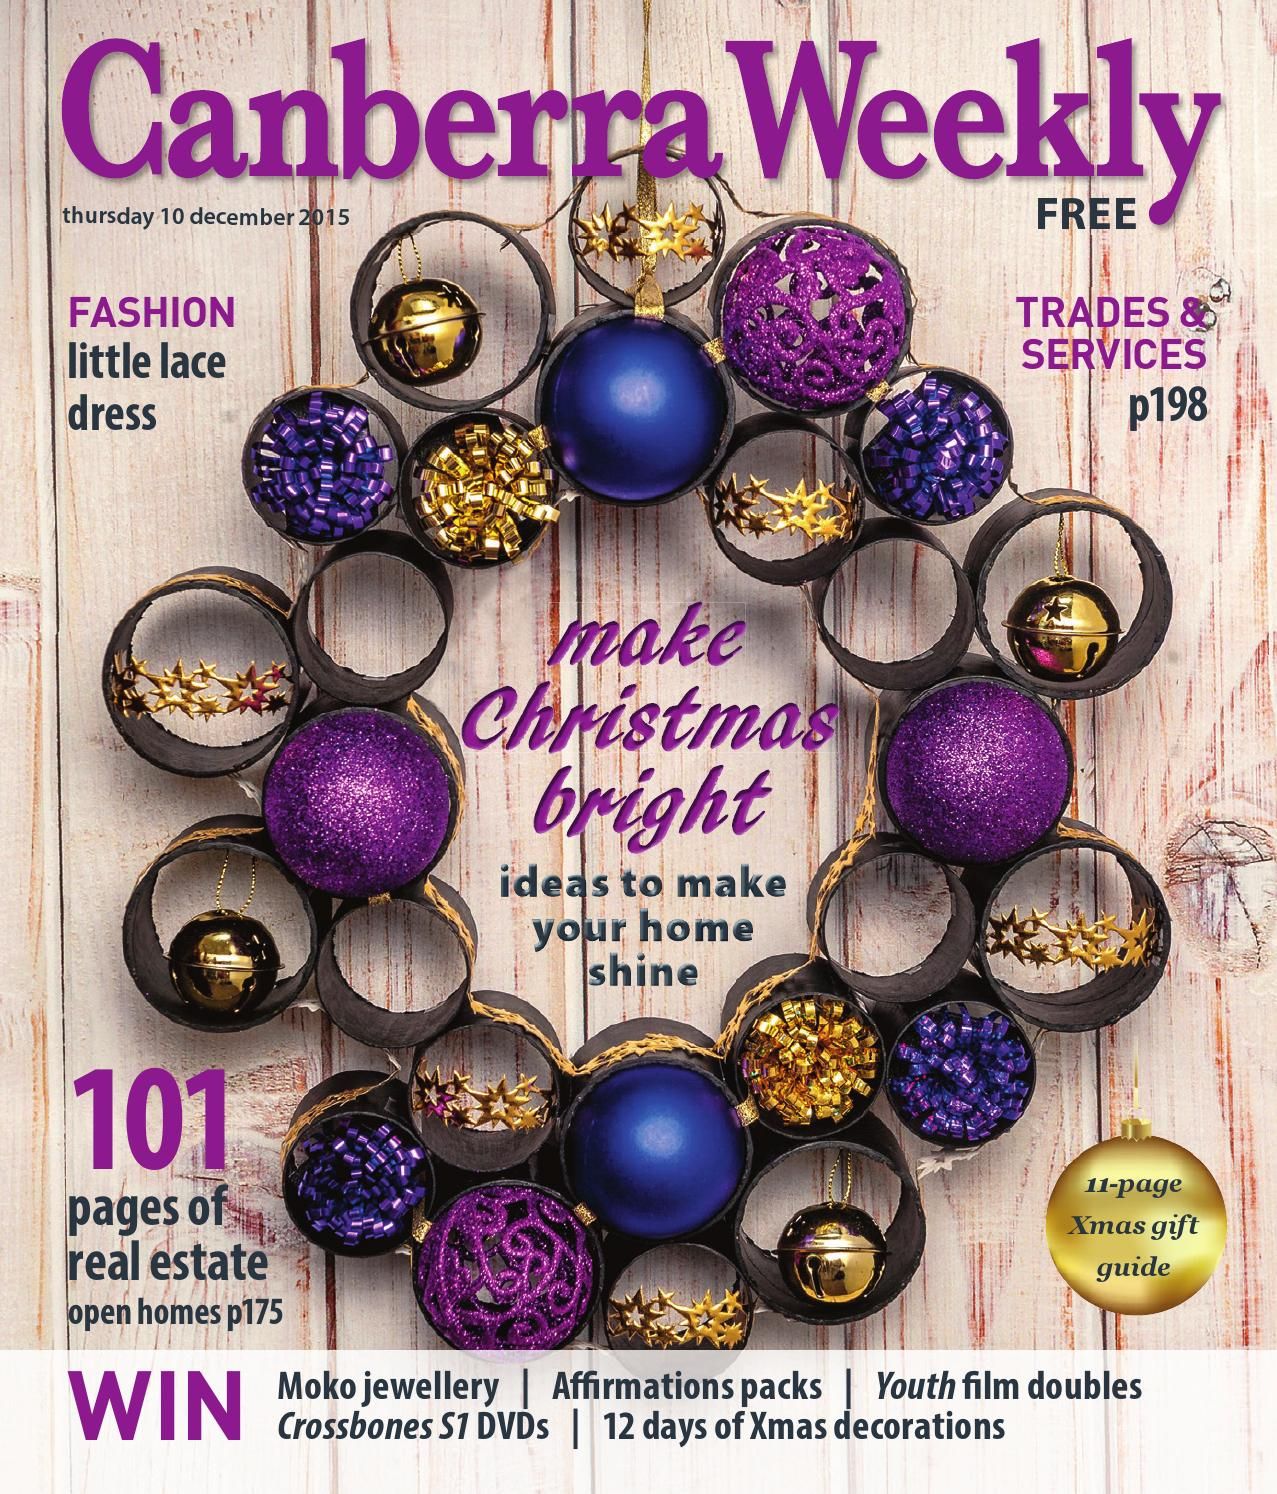 10 December 2015 by Canberra Weekly Magazine - issuu 490858e1873d